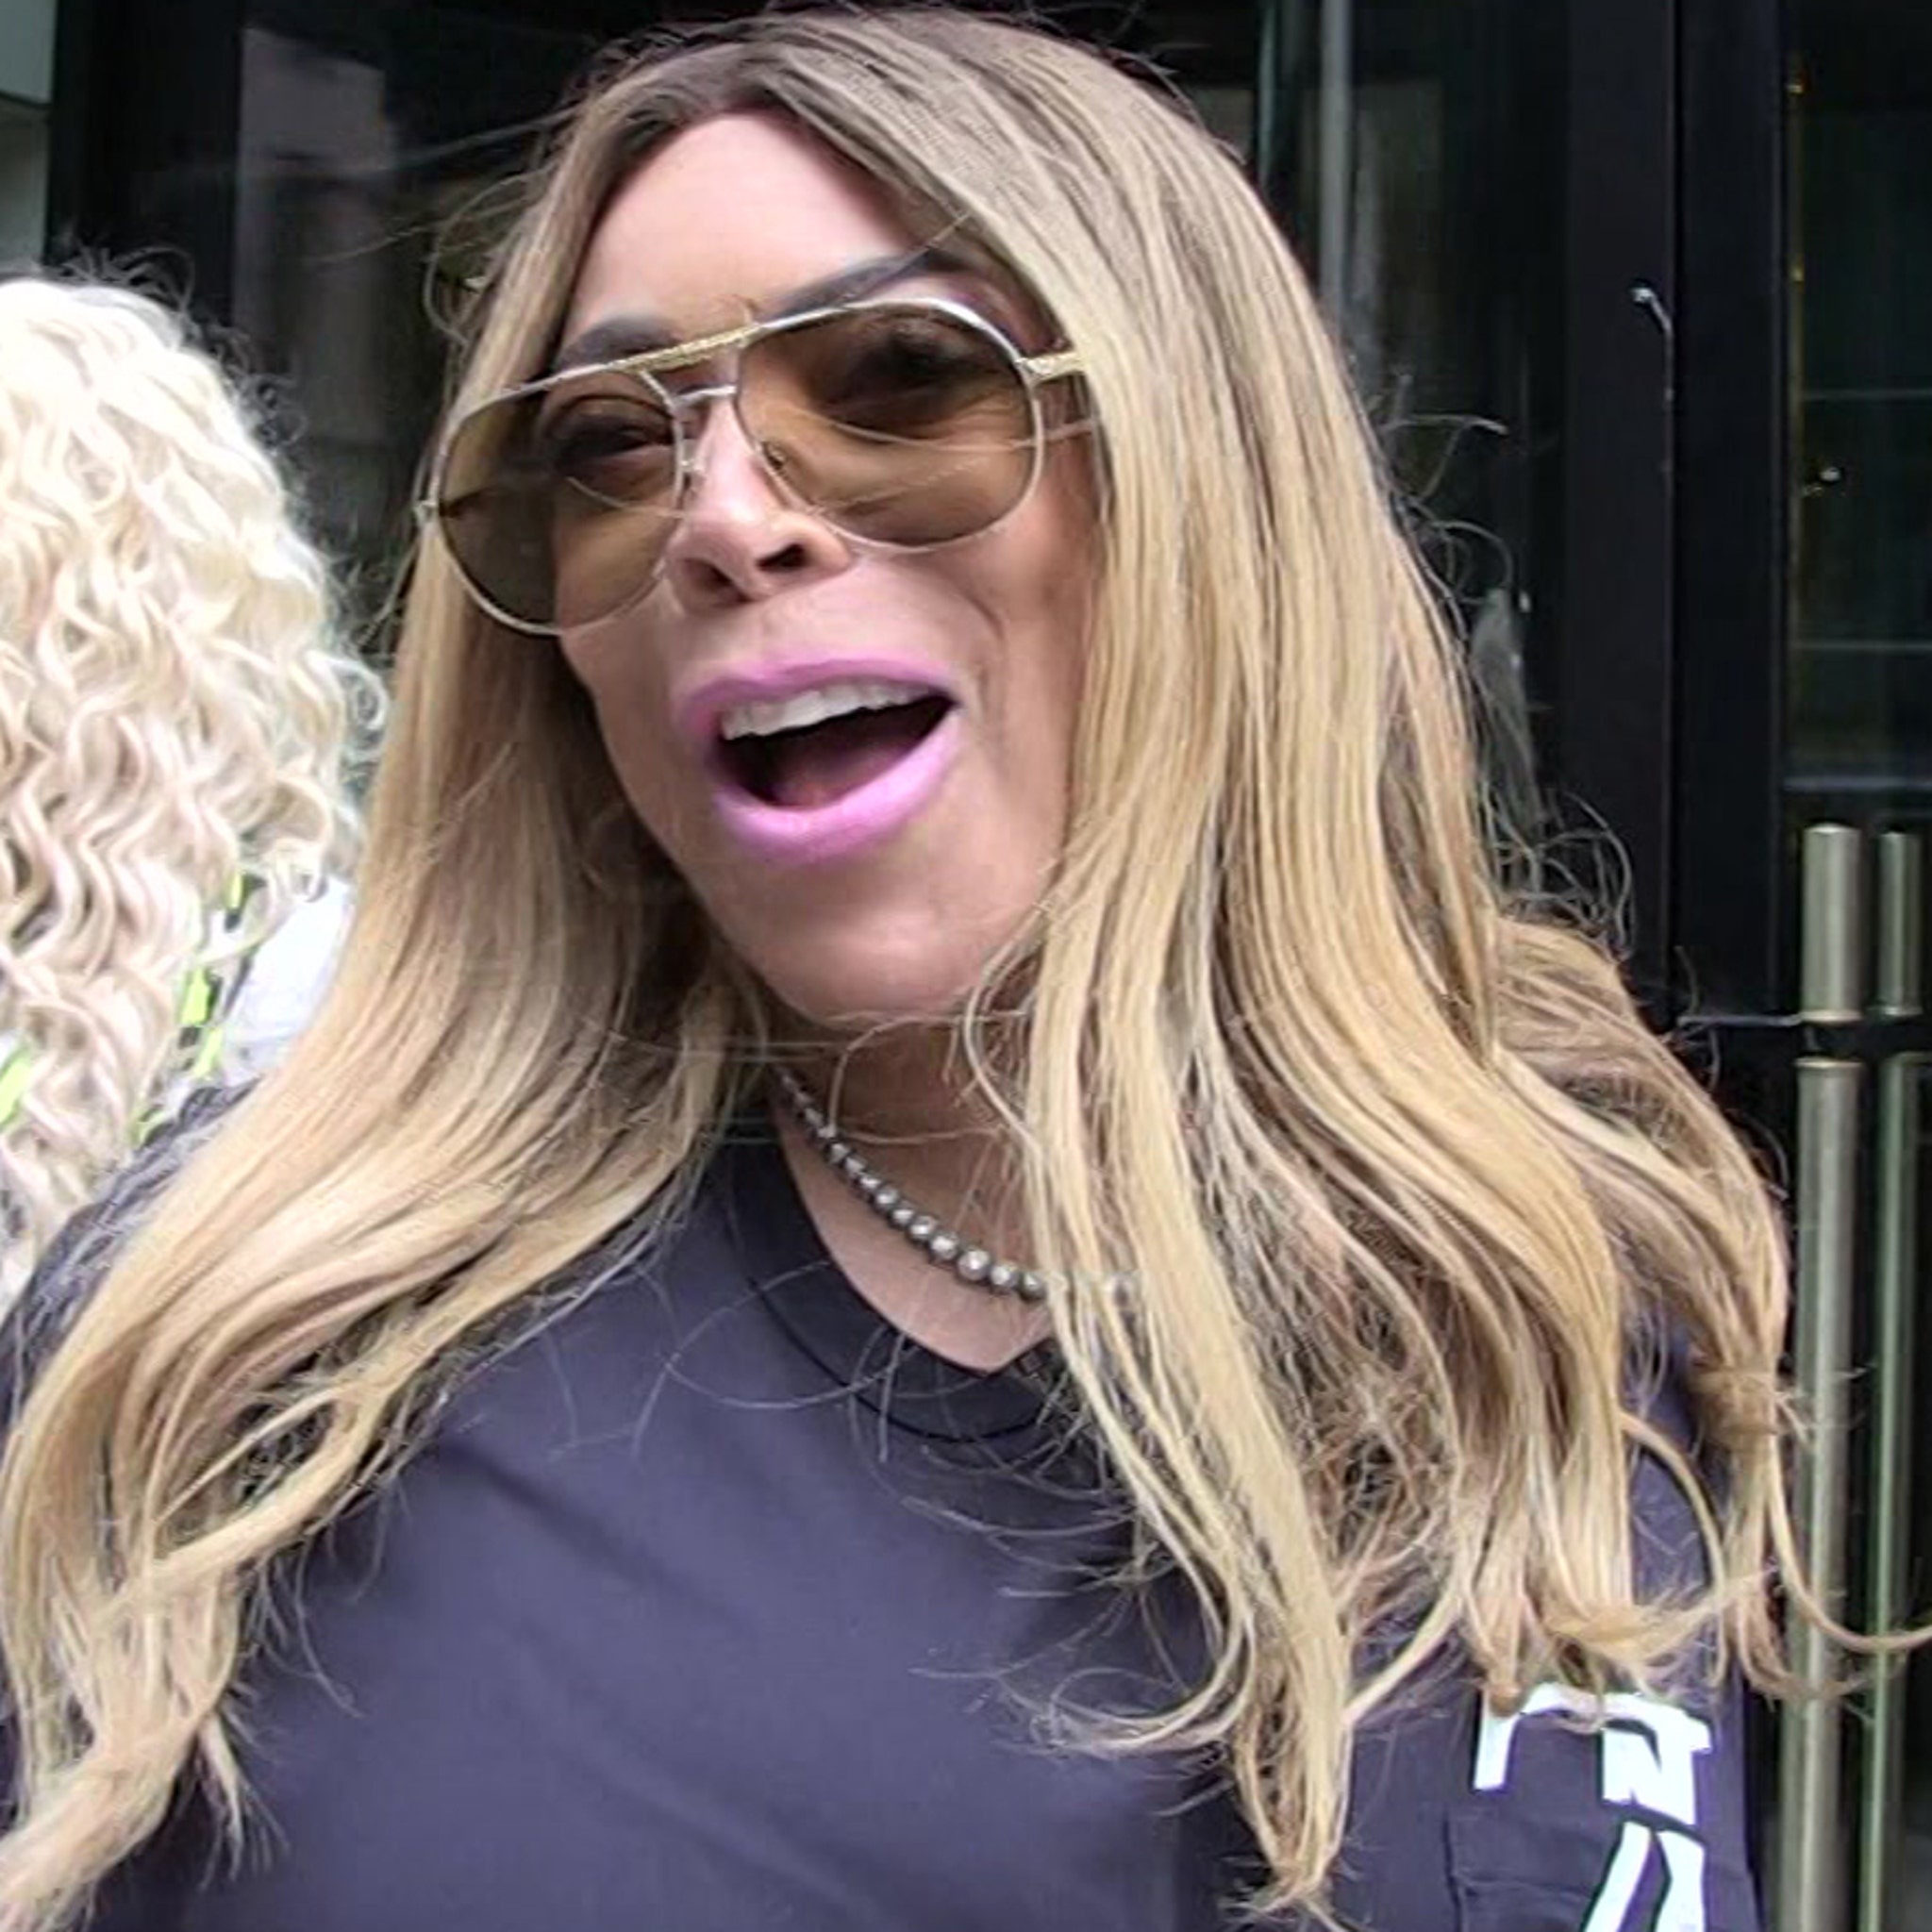 Wendy Williams in Prime of Dating Life, Taking 'Interviews'